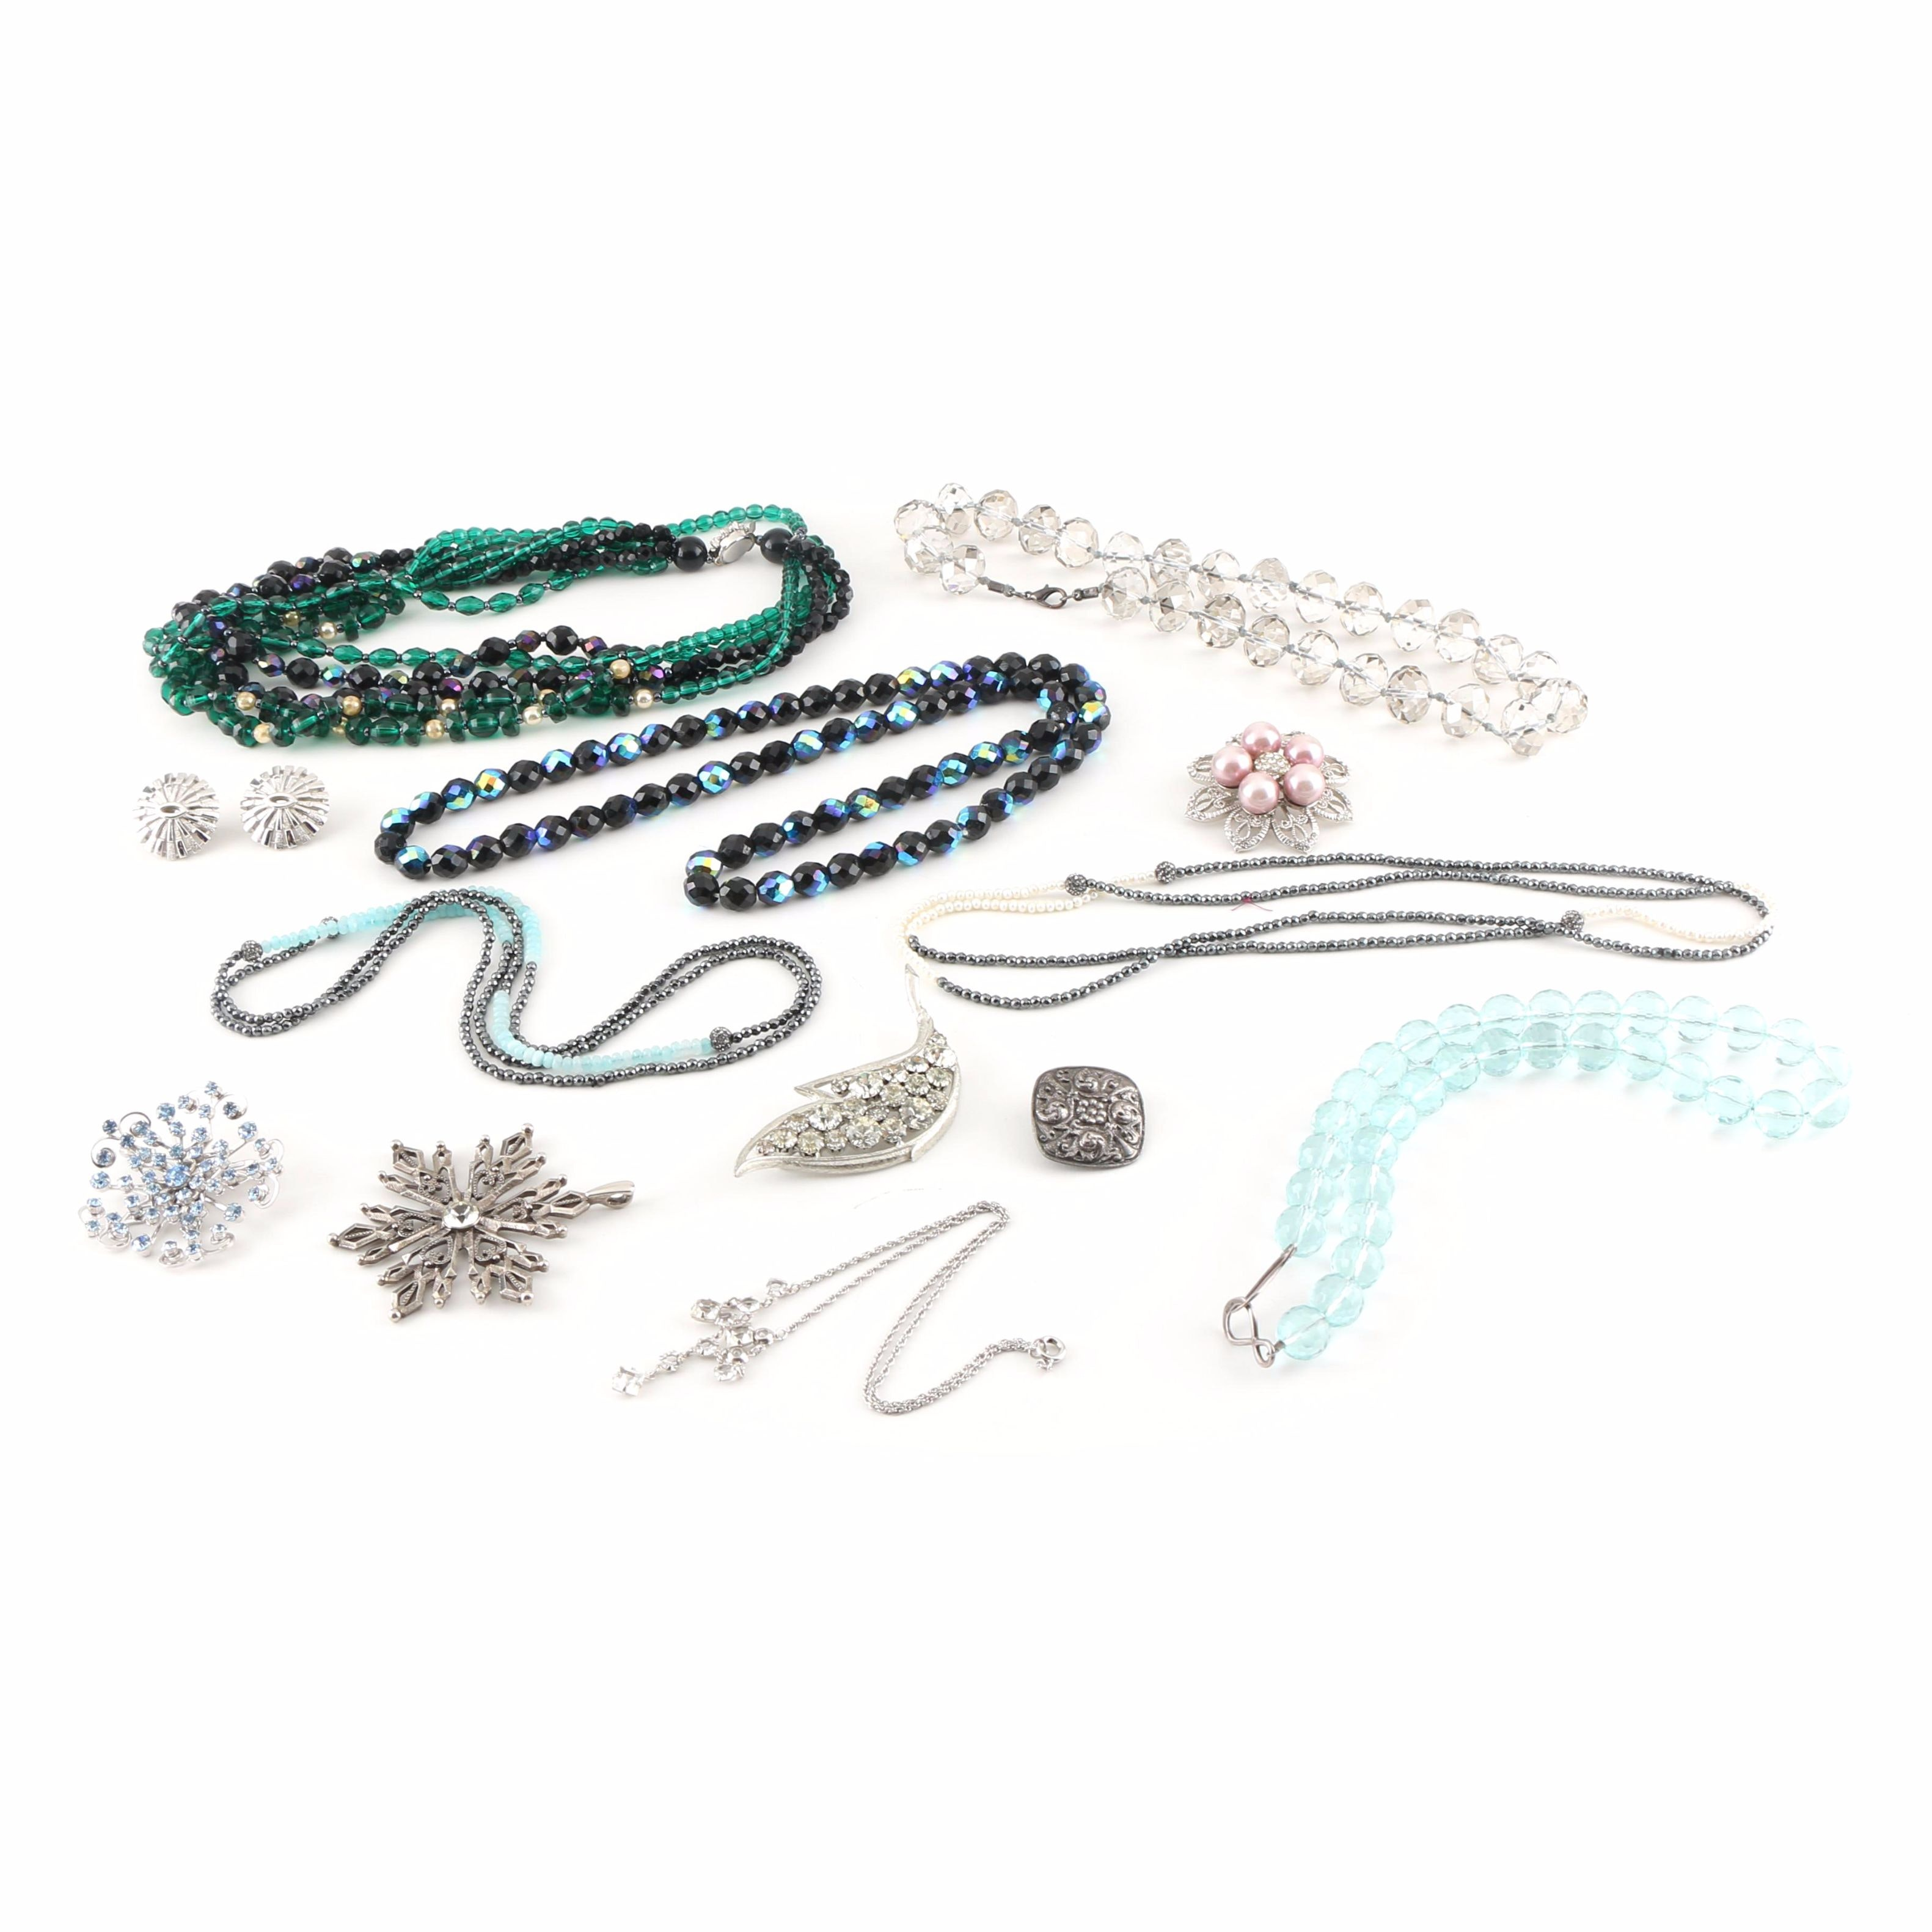 Collection of Costume Jewelry Including Gemstones and Sterling Silver